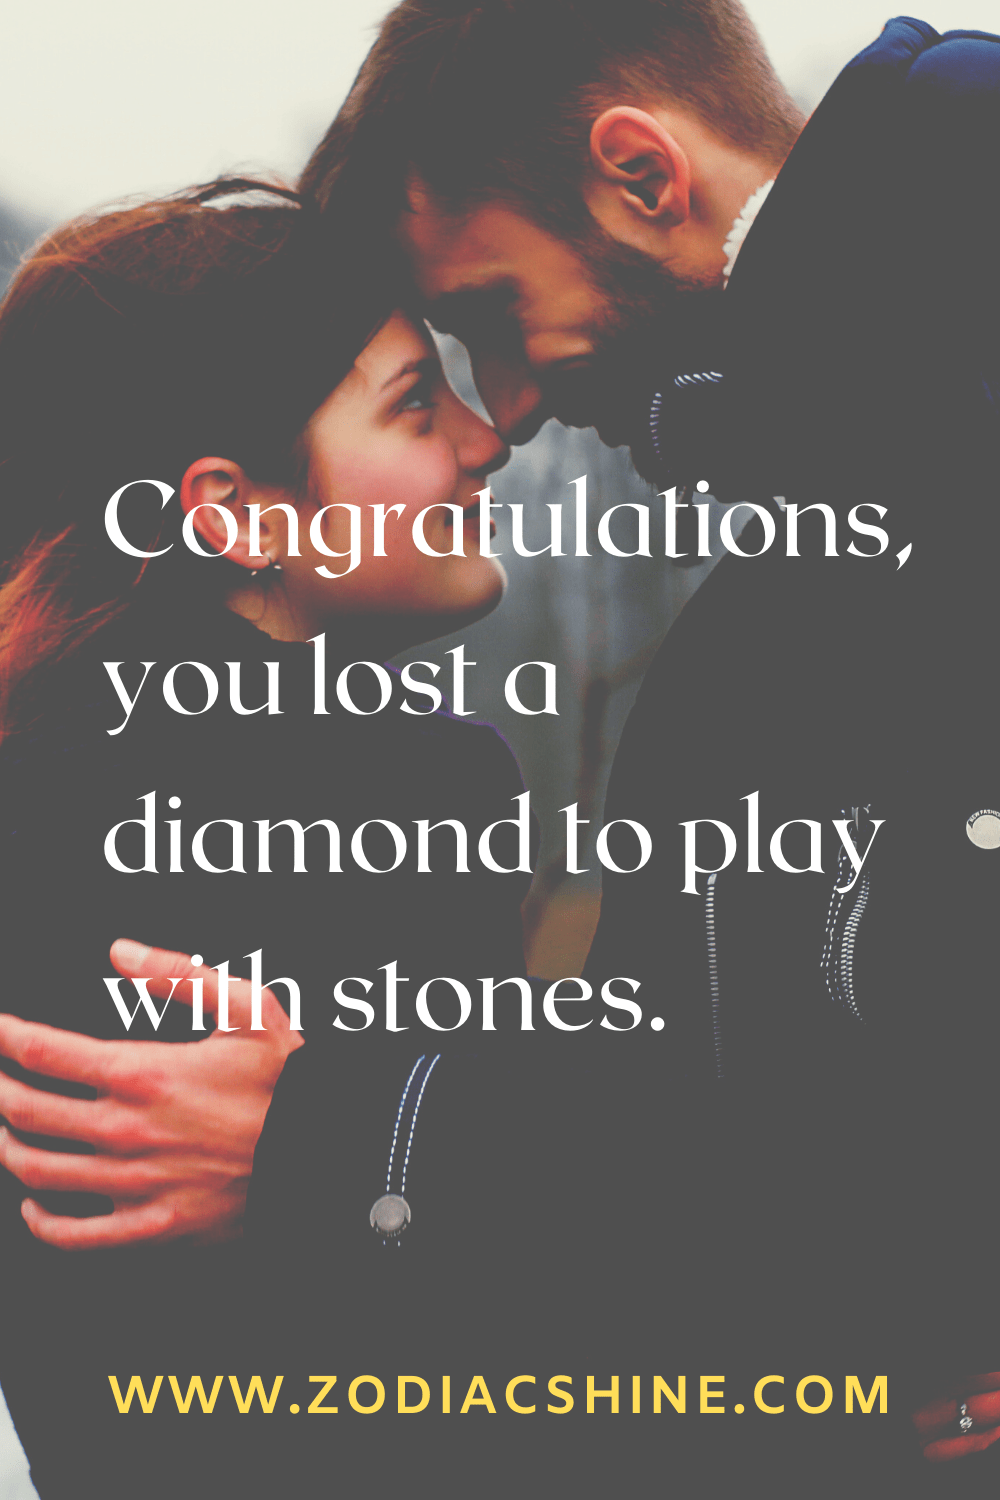 Congratulations, you lost a diamond to play with stones.